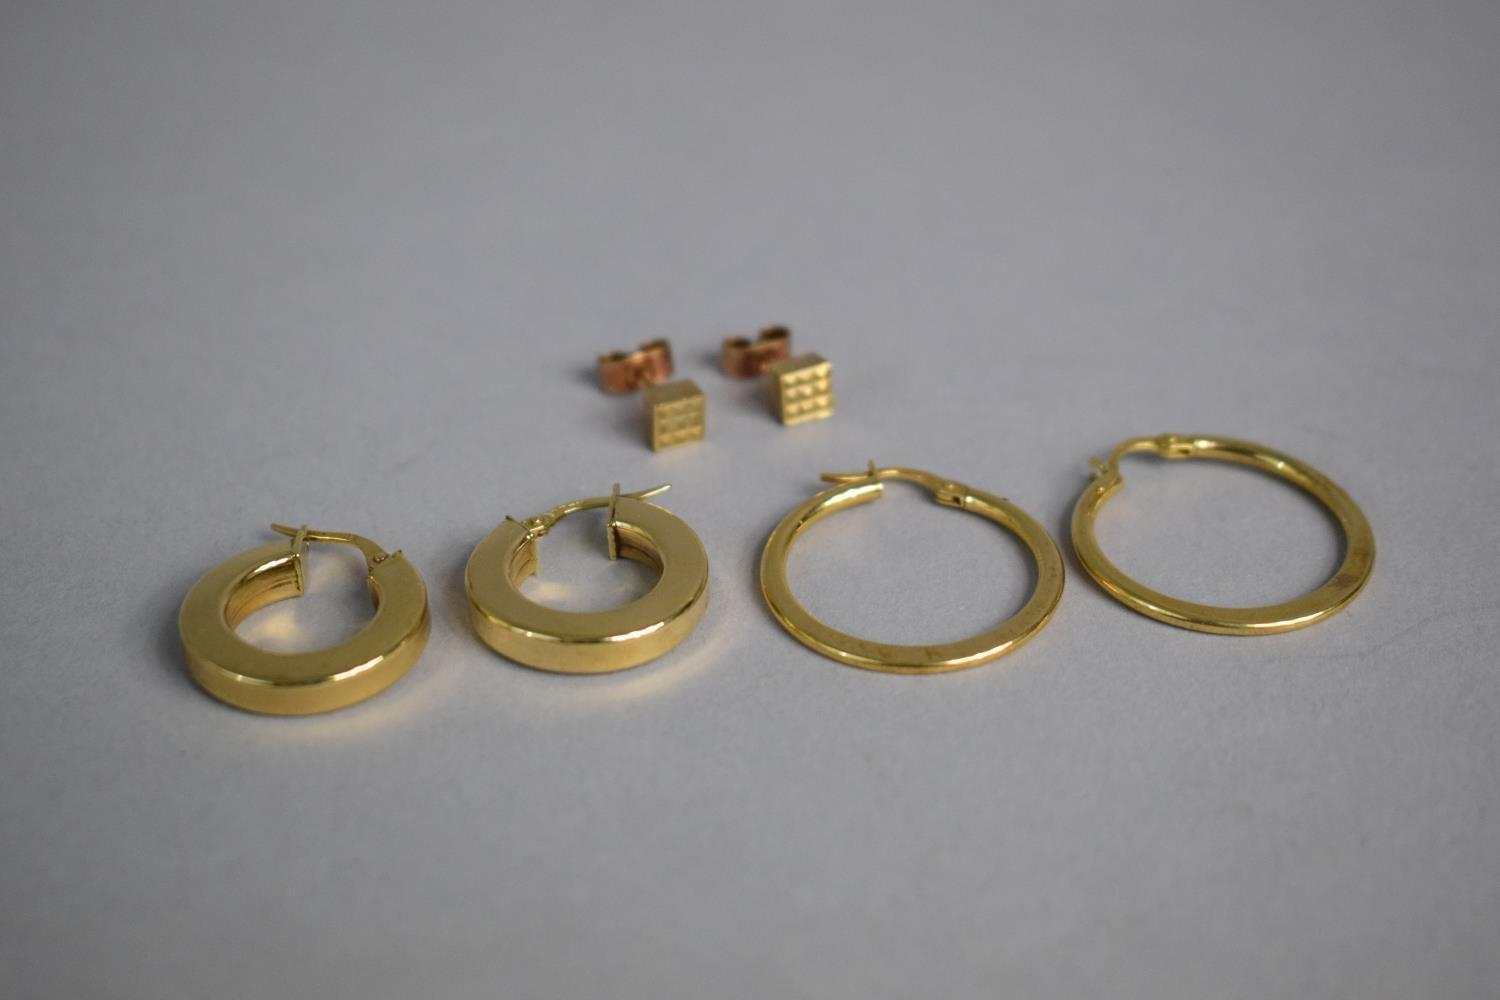 Lot 317 - A Collection of 9ct Gold Earrings 4.6gms Total Weight.